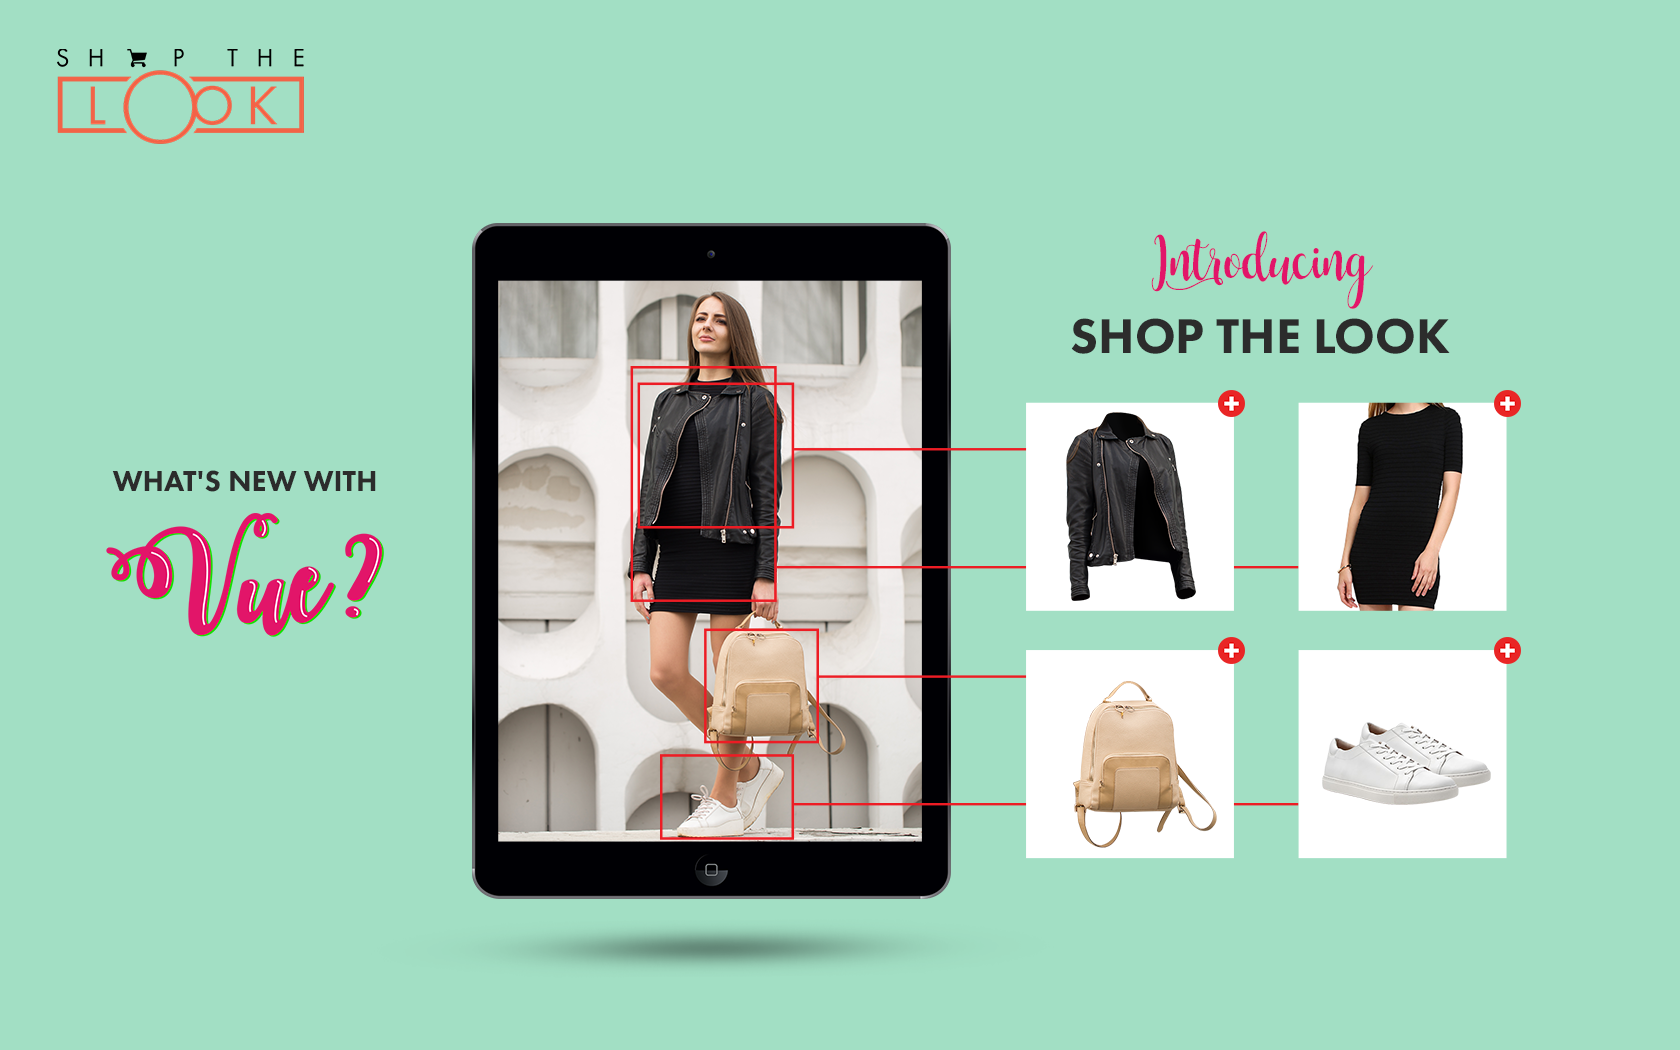 Introducing Shop the Look